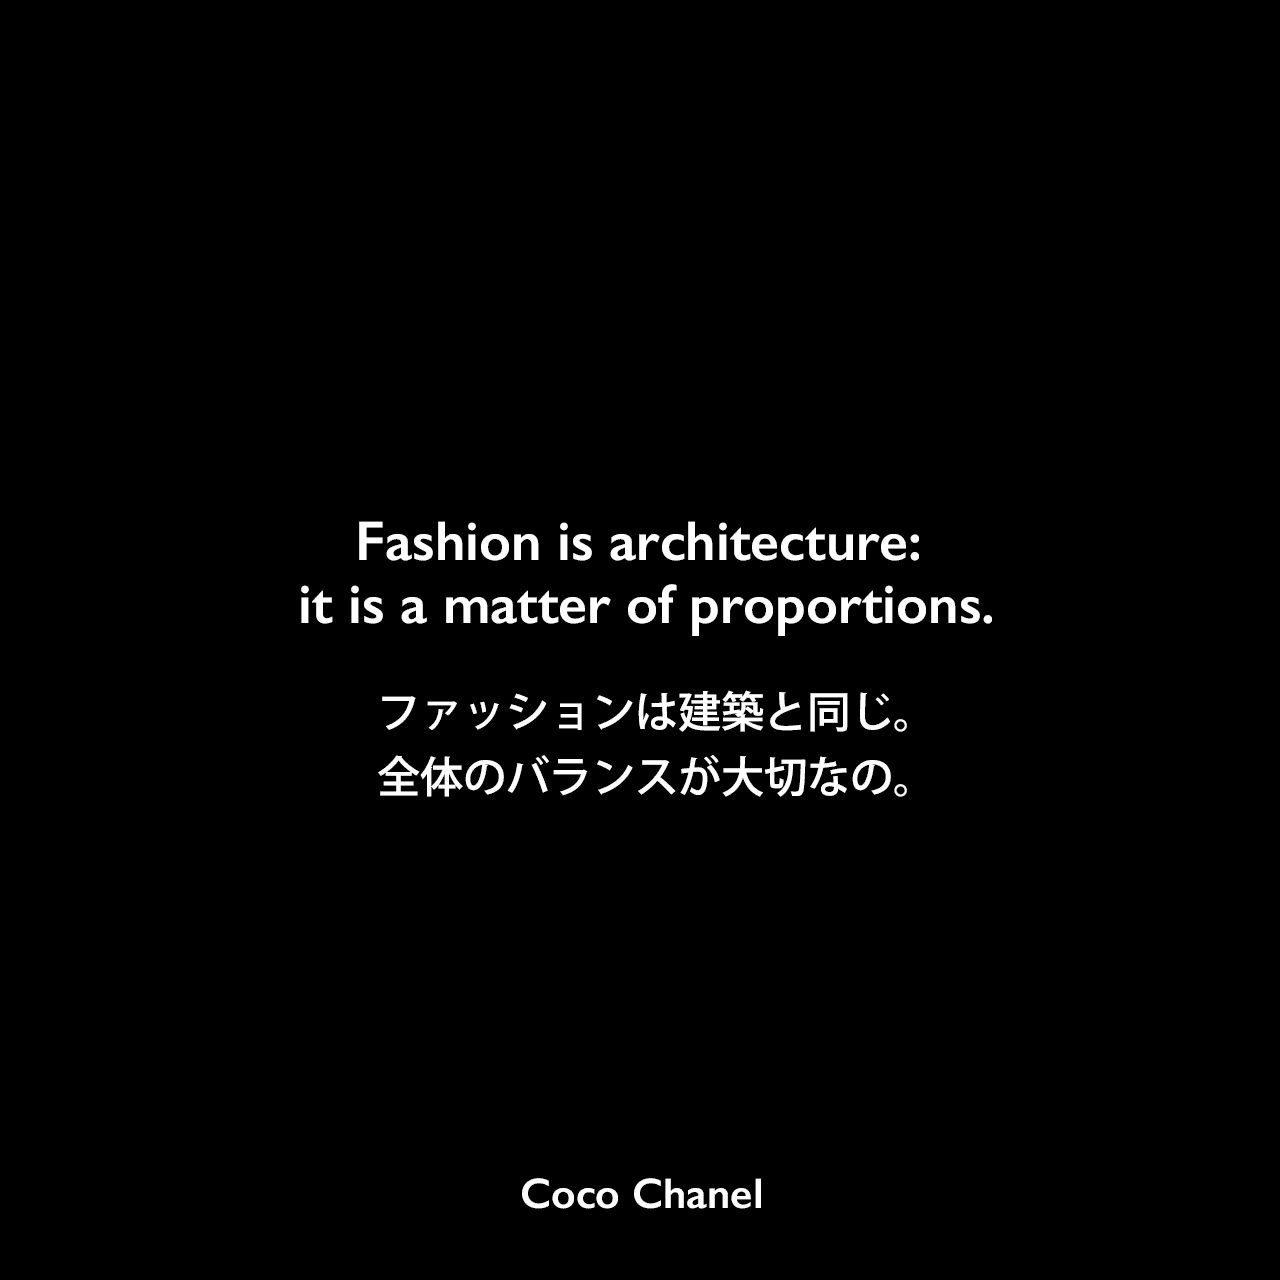 Fashion is architecture: it is a matter of proportions.ファッションは建築と同じ。全体のバランスが大切なの。- マルセル・ヘードリッヒの本「Coco Chanel : Her Life, Her Secrets」よりCoco Chanel